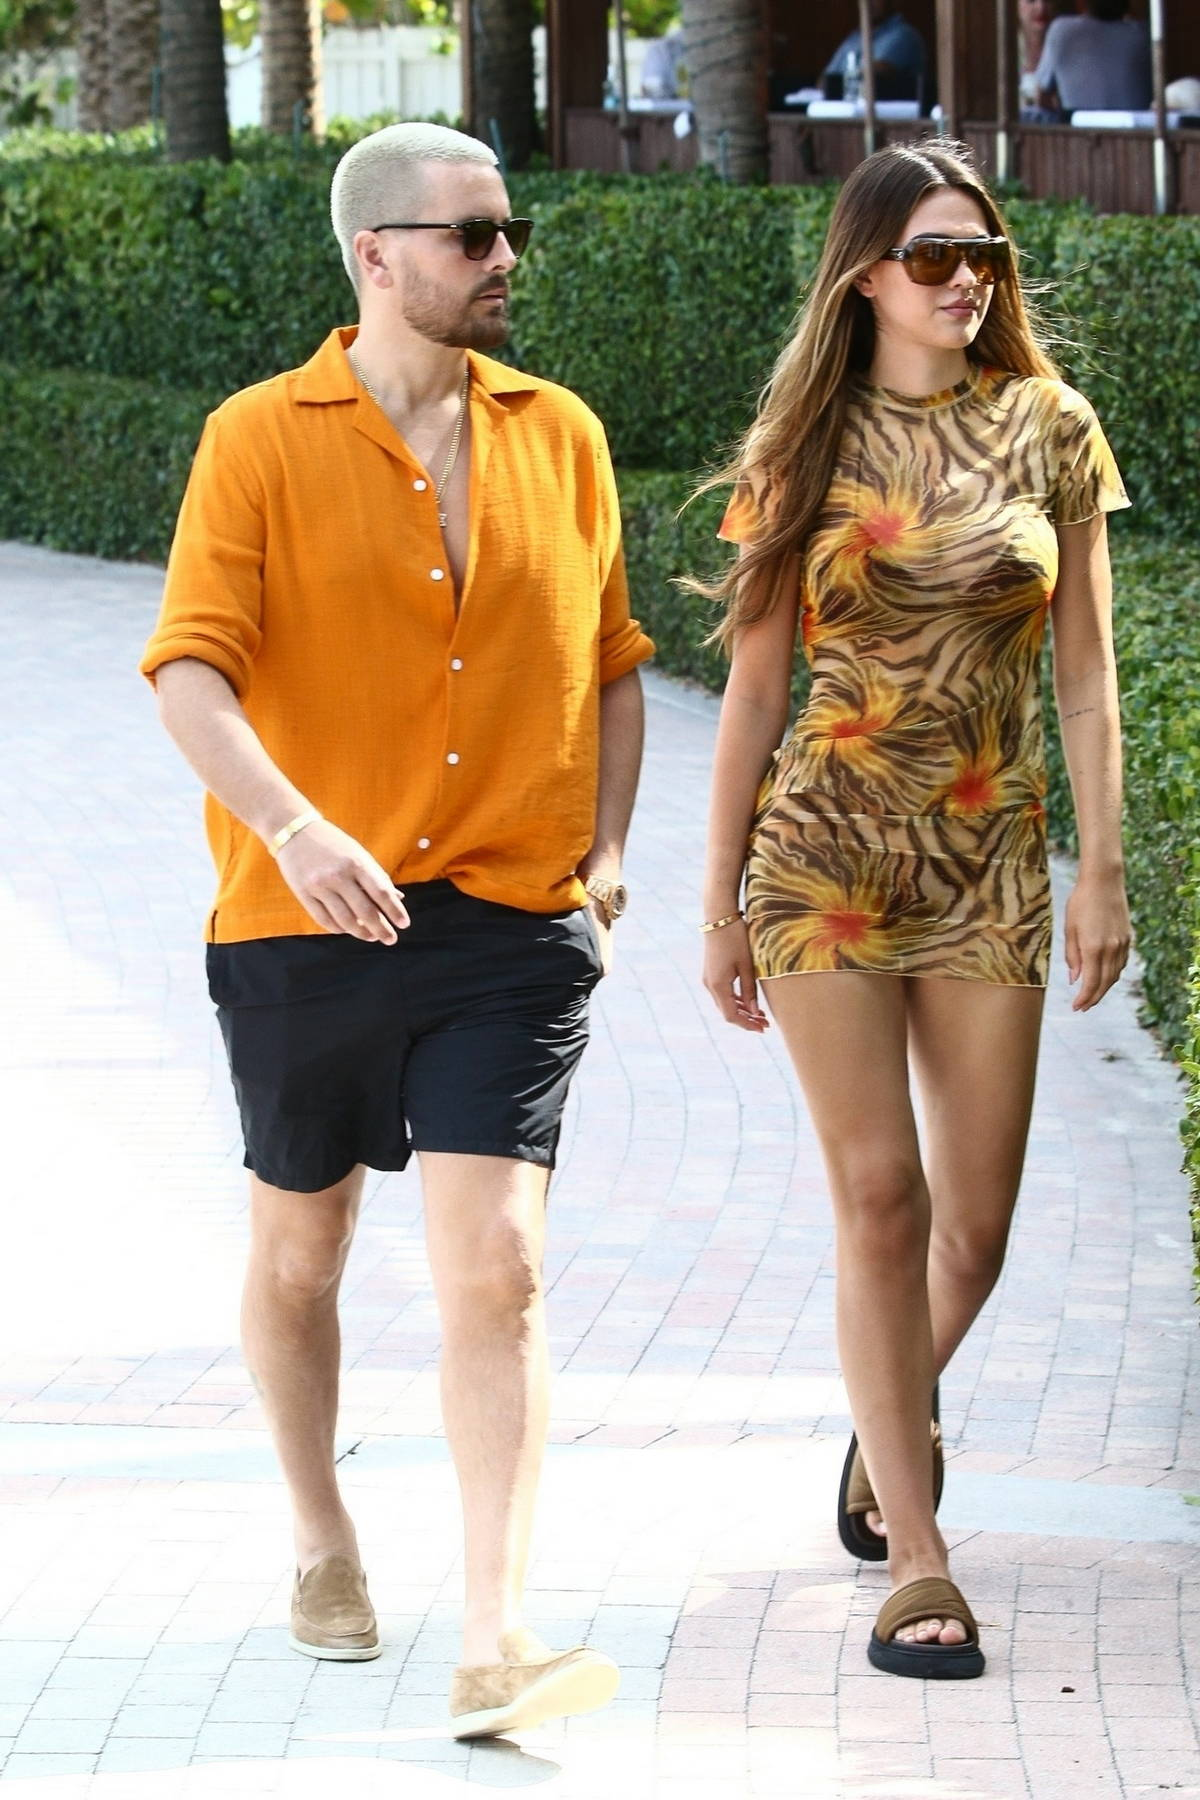 Amelia Hamlin puts on a leggy display in a floral print mini dress while she and Scott Disick hit the beach in Miami, Florida